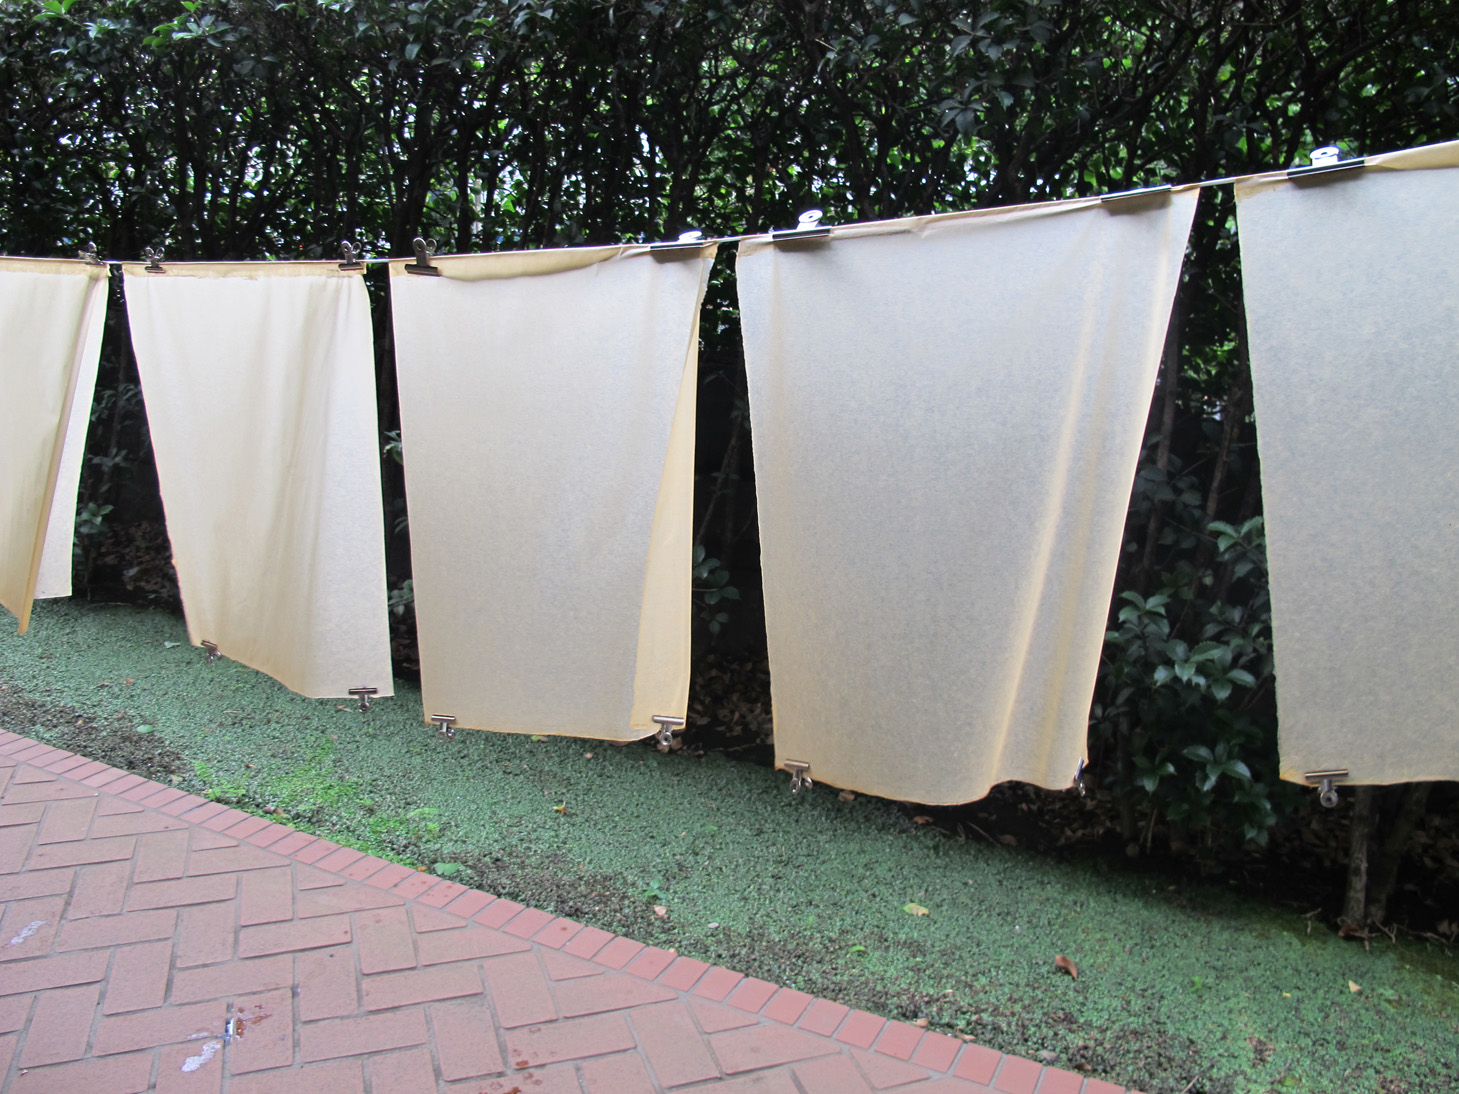 Fig. 8: Hanging washi out to dry